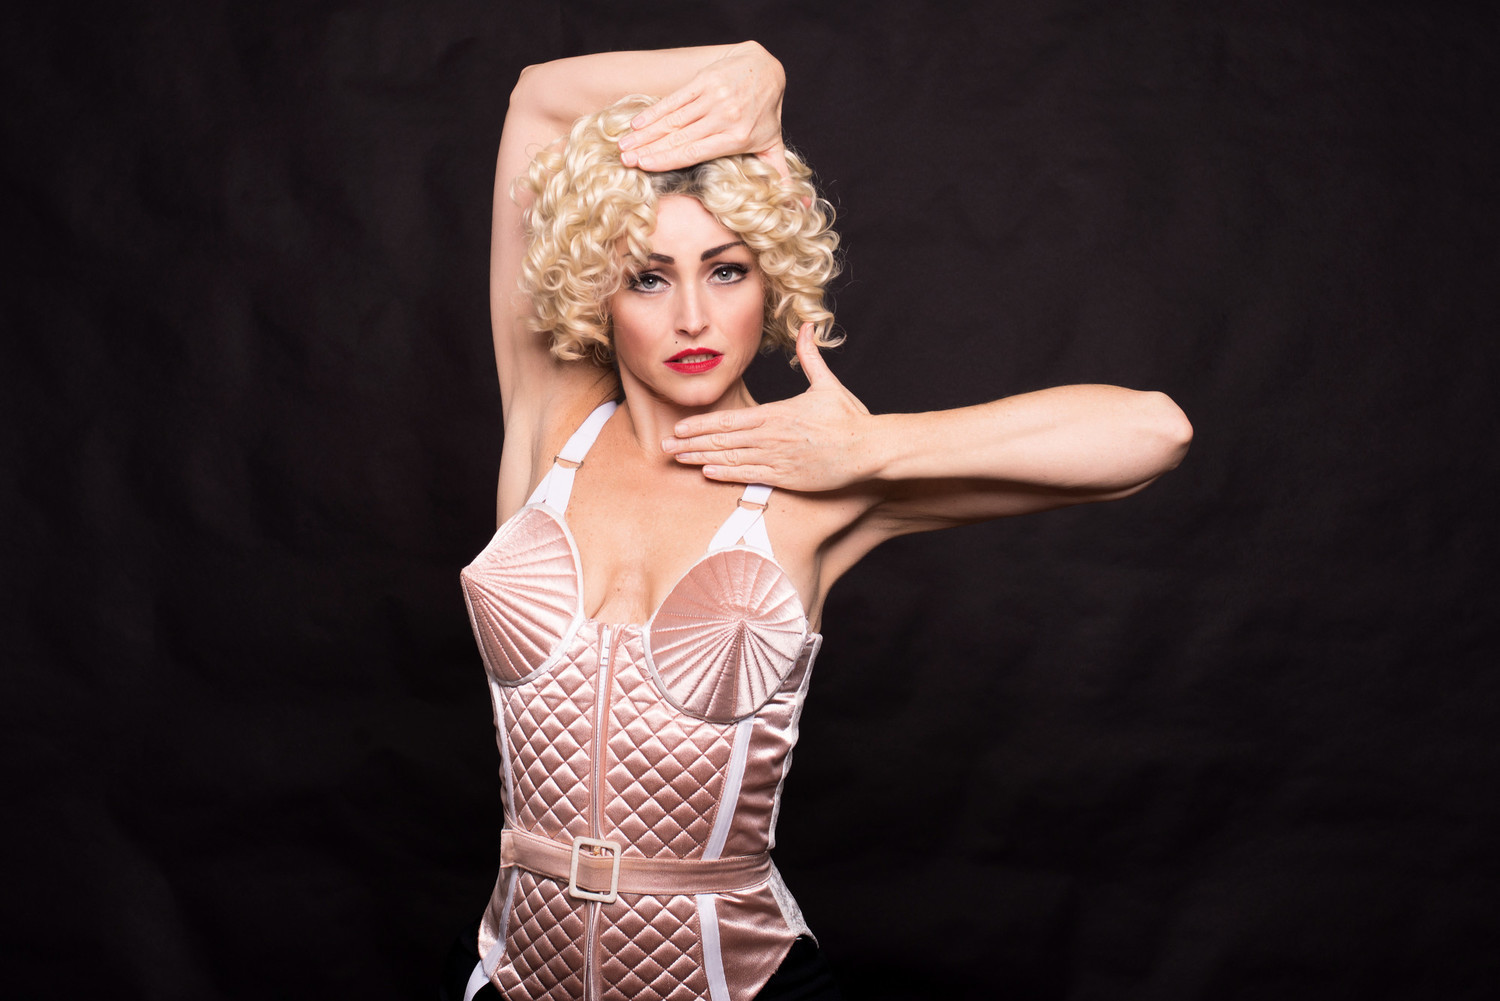 BWW Interview: UK BASED ARTIST TASHA LEAPER On Performing Her Madonna Act In India